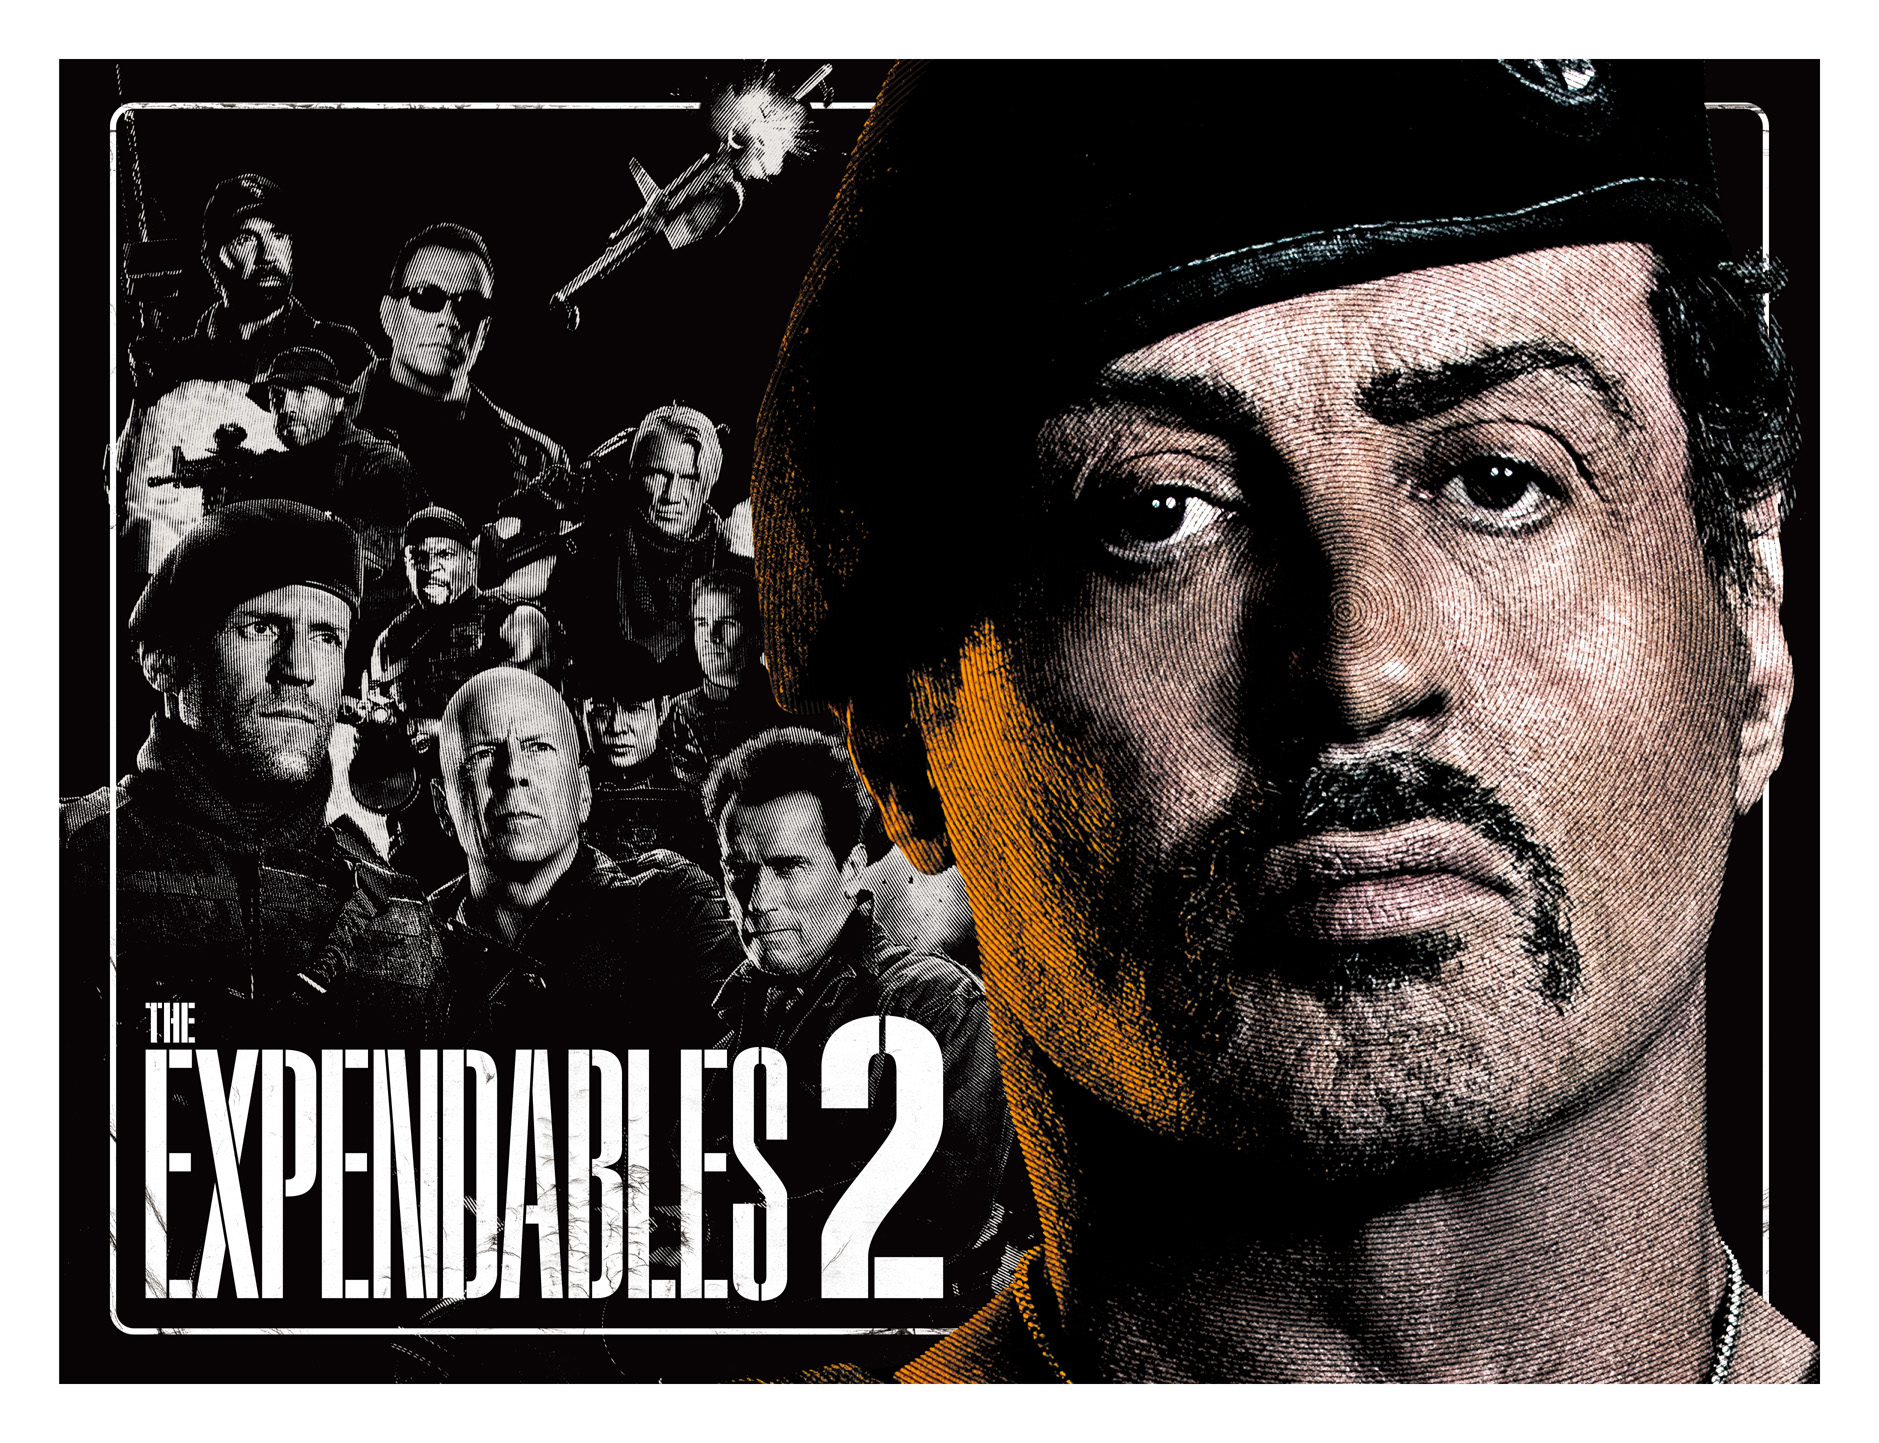 THE EXPENDABLES 2 劇場パンフレット表紙デザイン